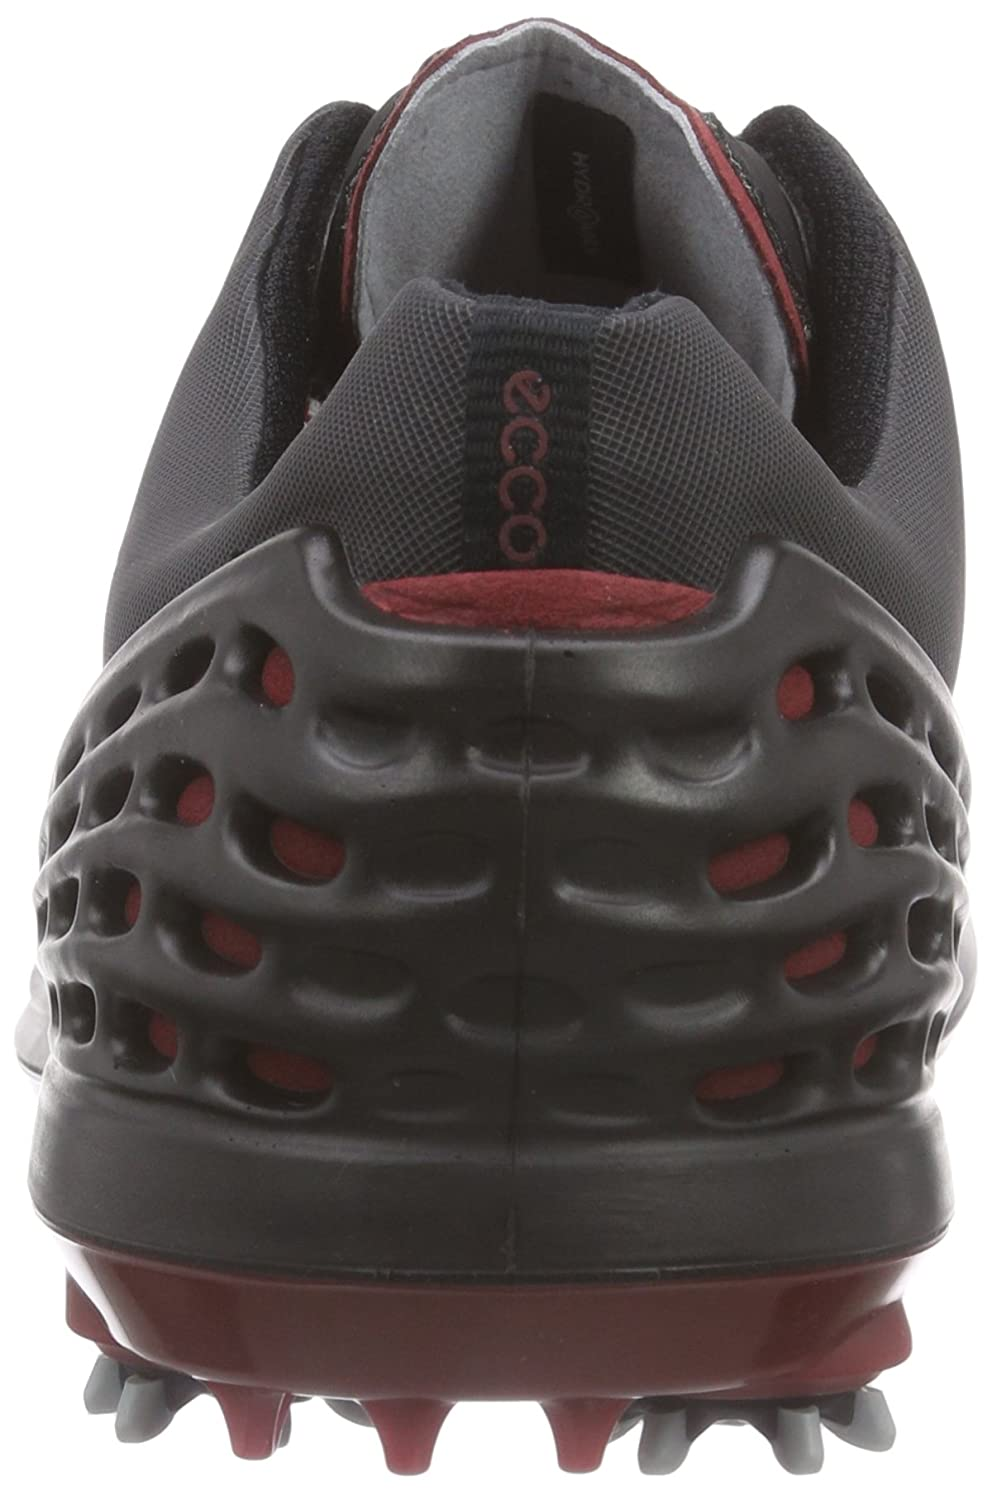 info for cfc1d 10ea1 Zapato de golf ECCO Men s Cage Blanco negro